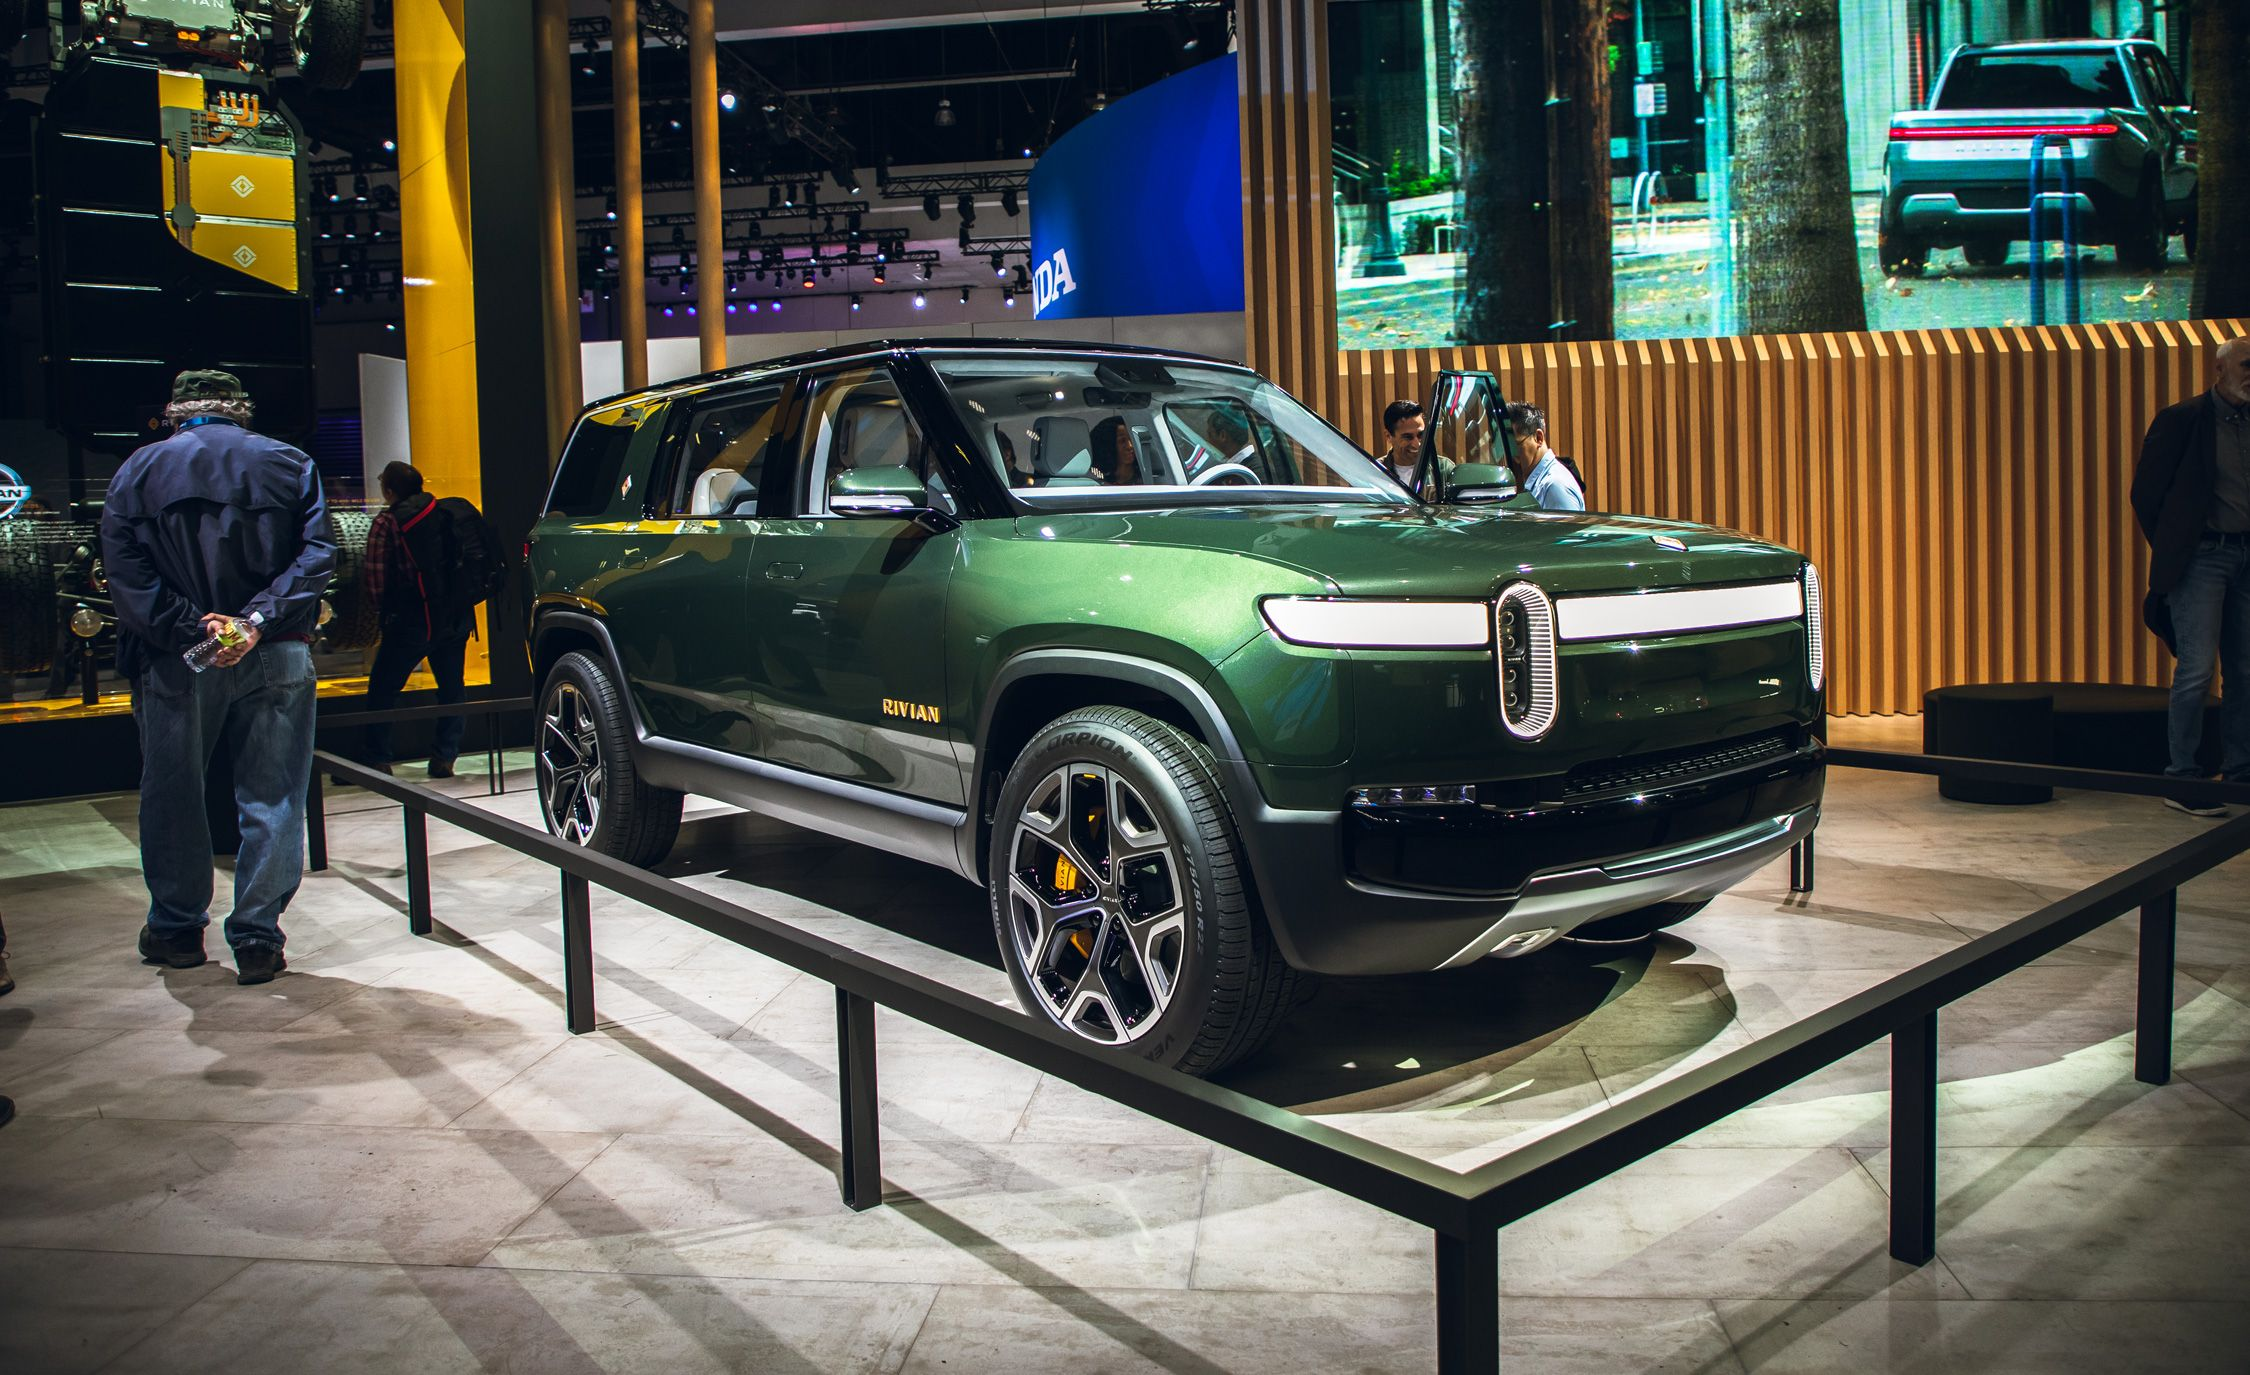 The 2021 Rivian R1S Is an Electric Seven-Passenger SUV Claiming Supercar Acceleration